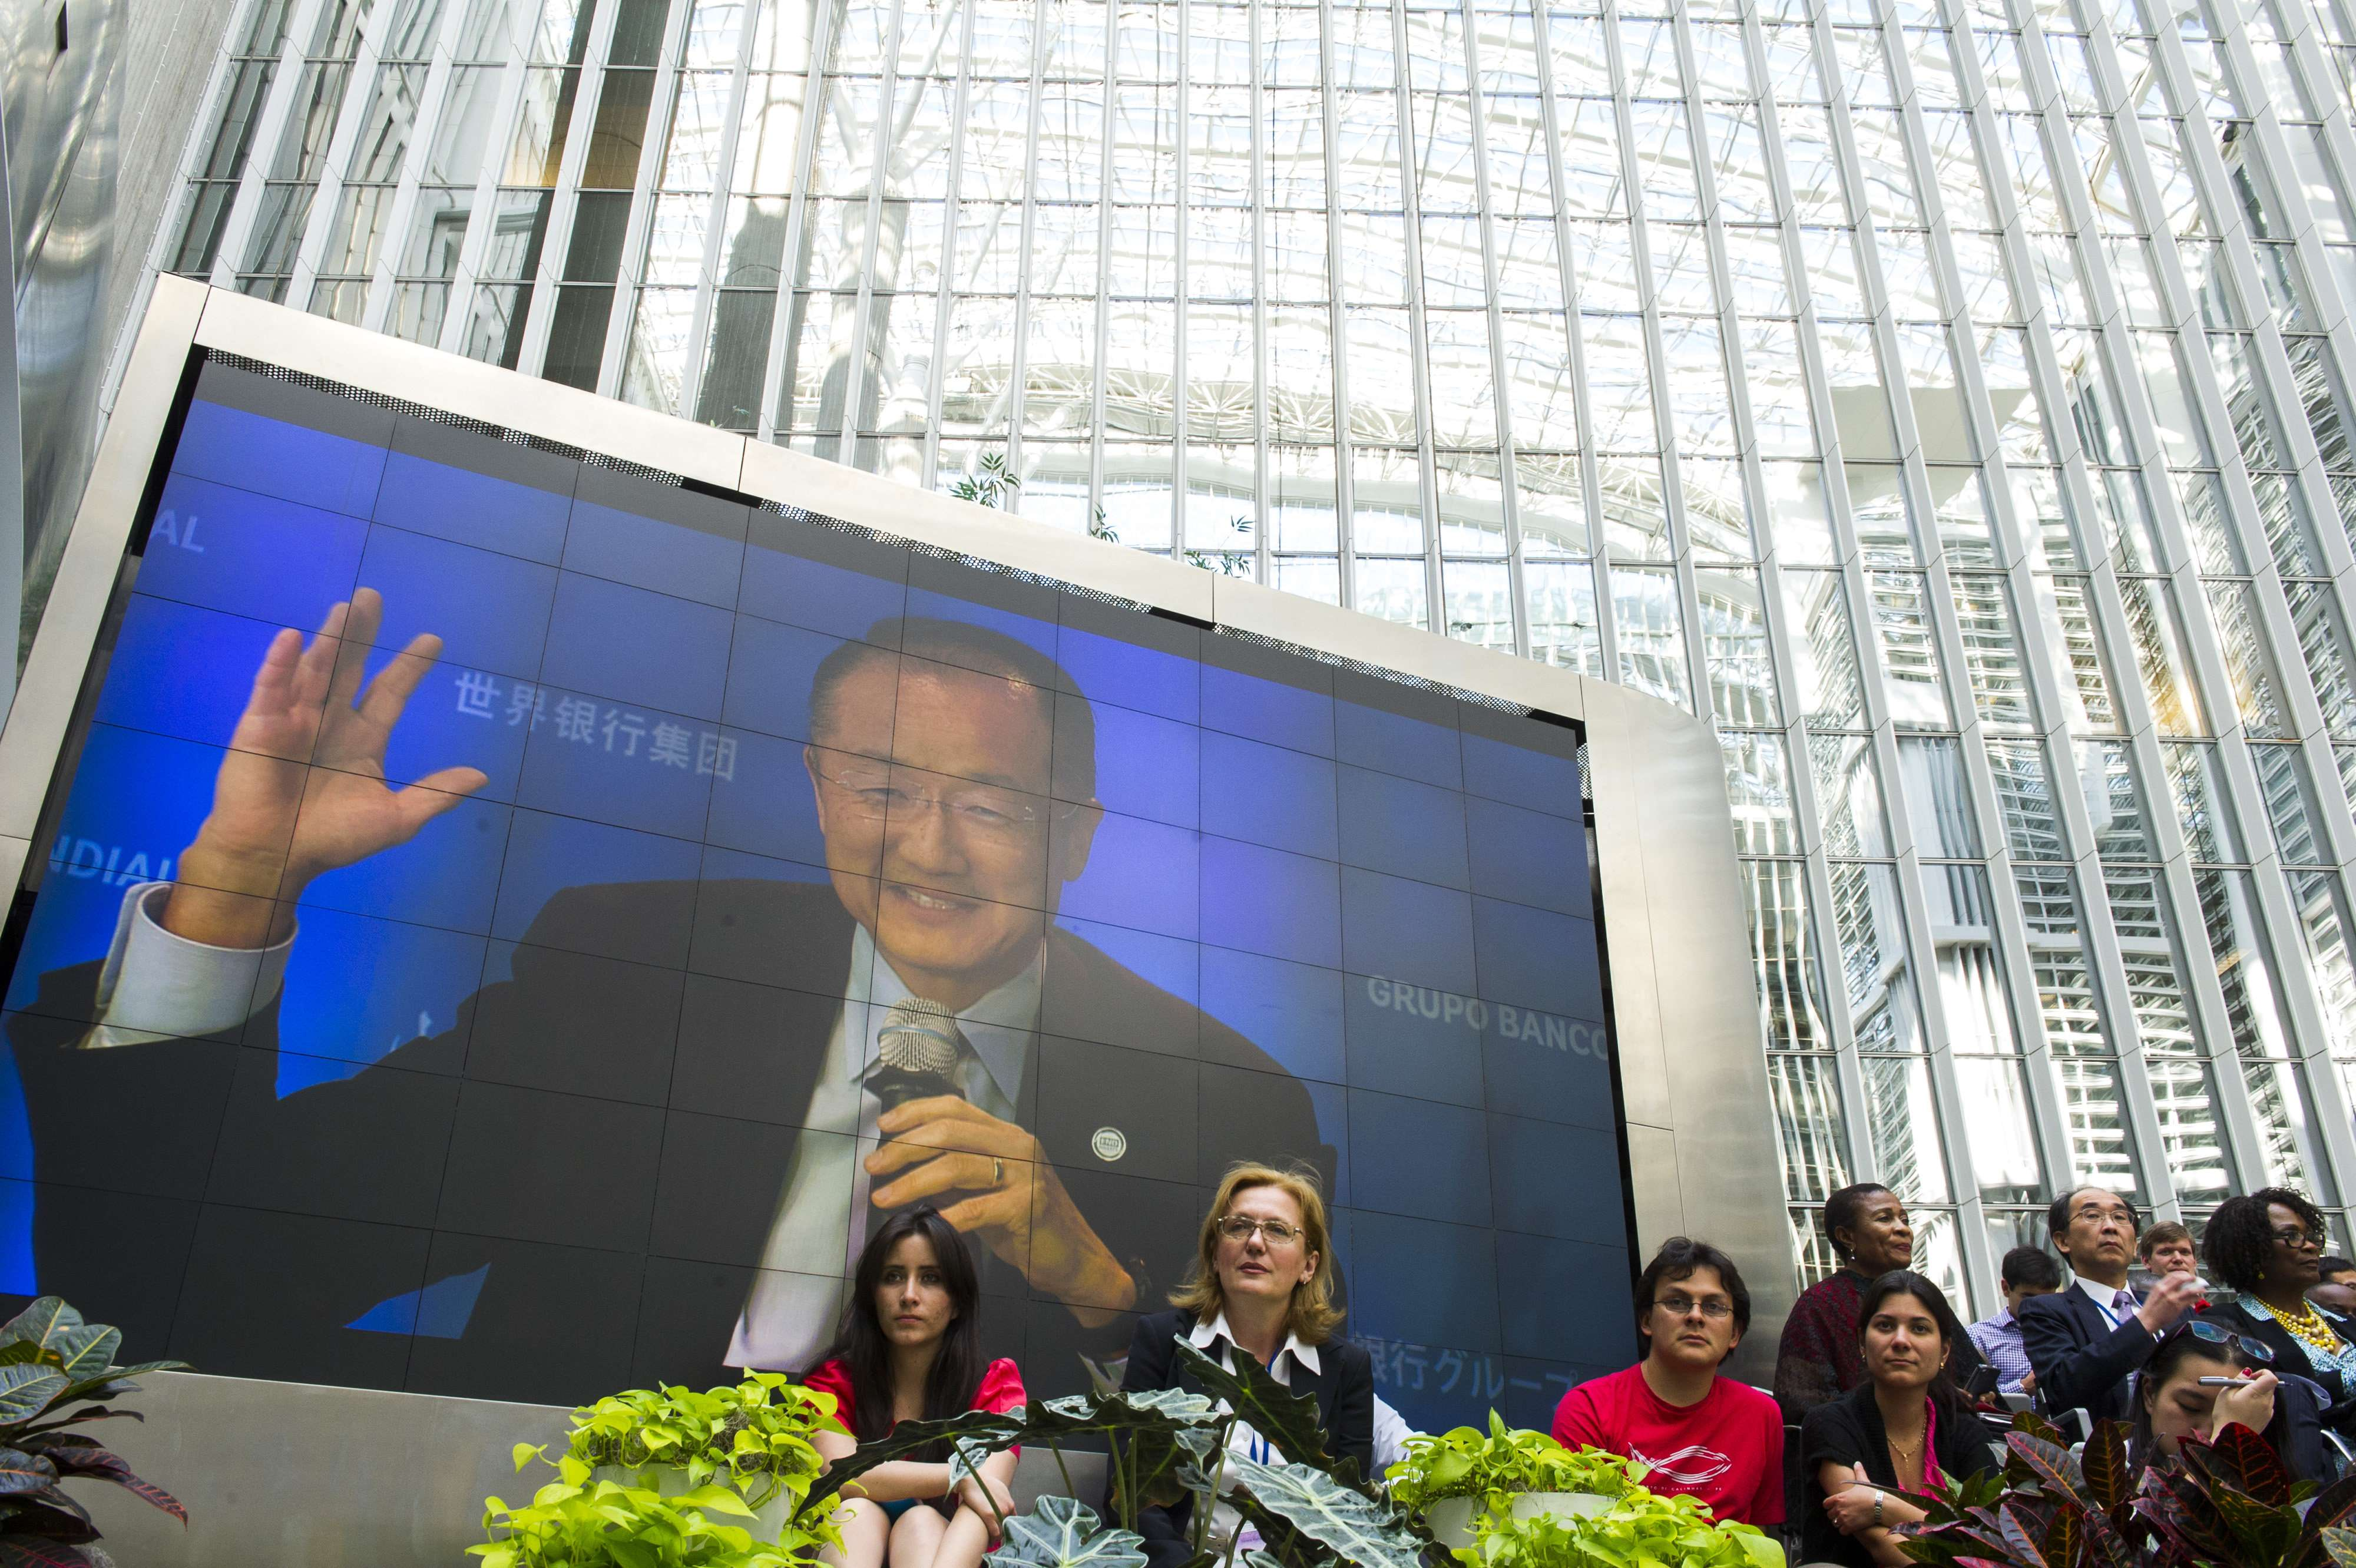 """World Bank Group President Jim Yong Kim is seen on a large screen as he addresses a discussion on """"Sharing Prosperity, Delivering Results"""" during the IMF/World Bank Spring Meetings in Washington on April 11, 2014.    AFP PHOTO/ROD LAMKEY JR"""